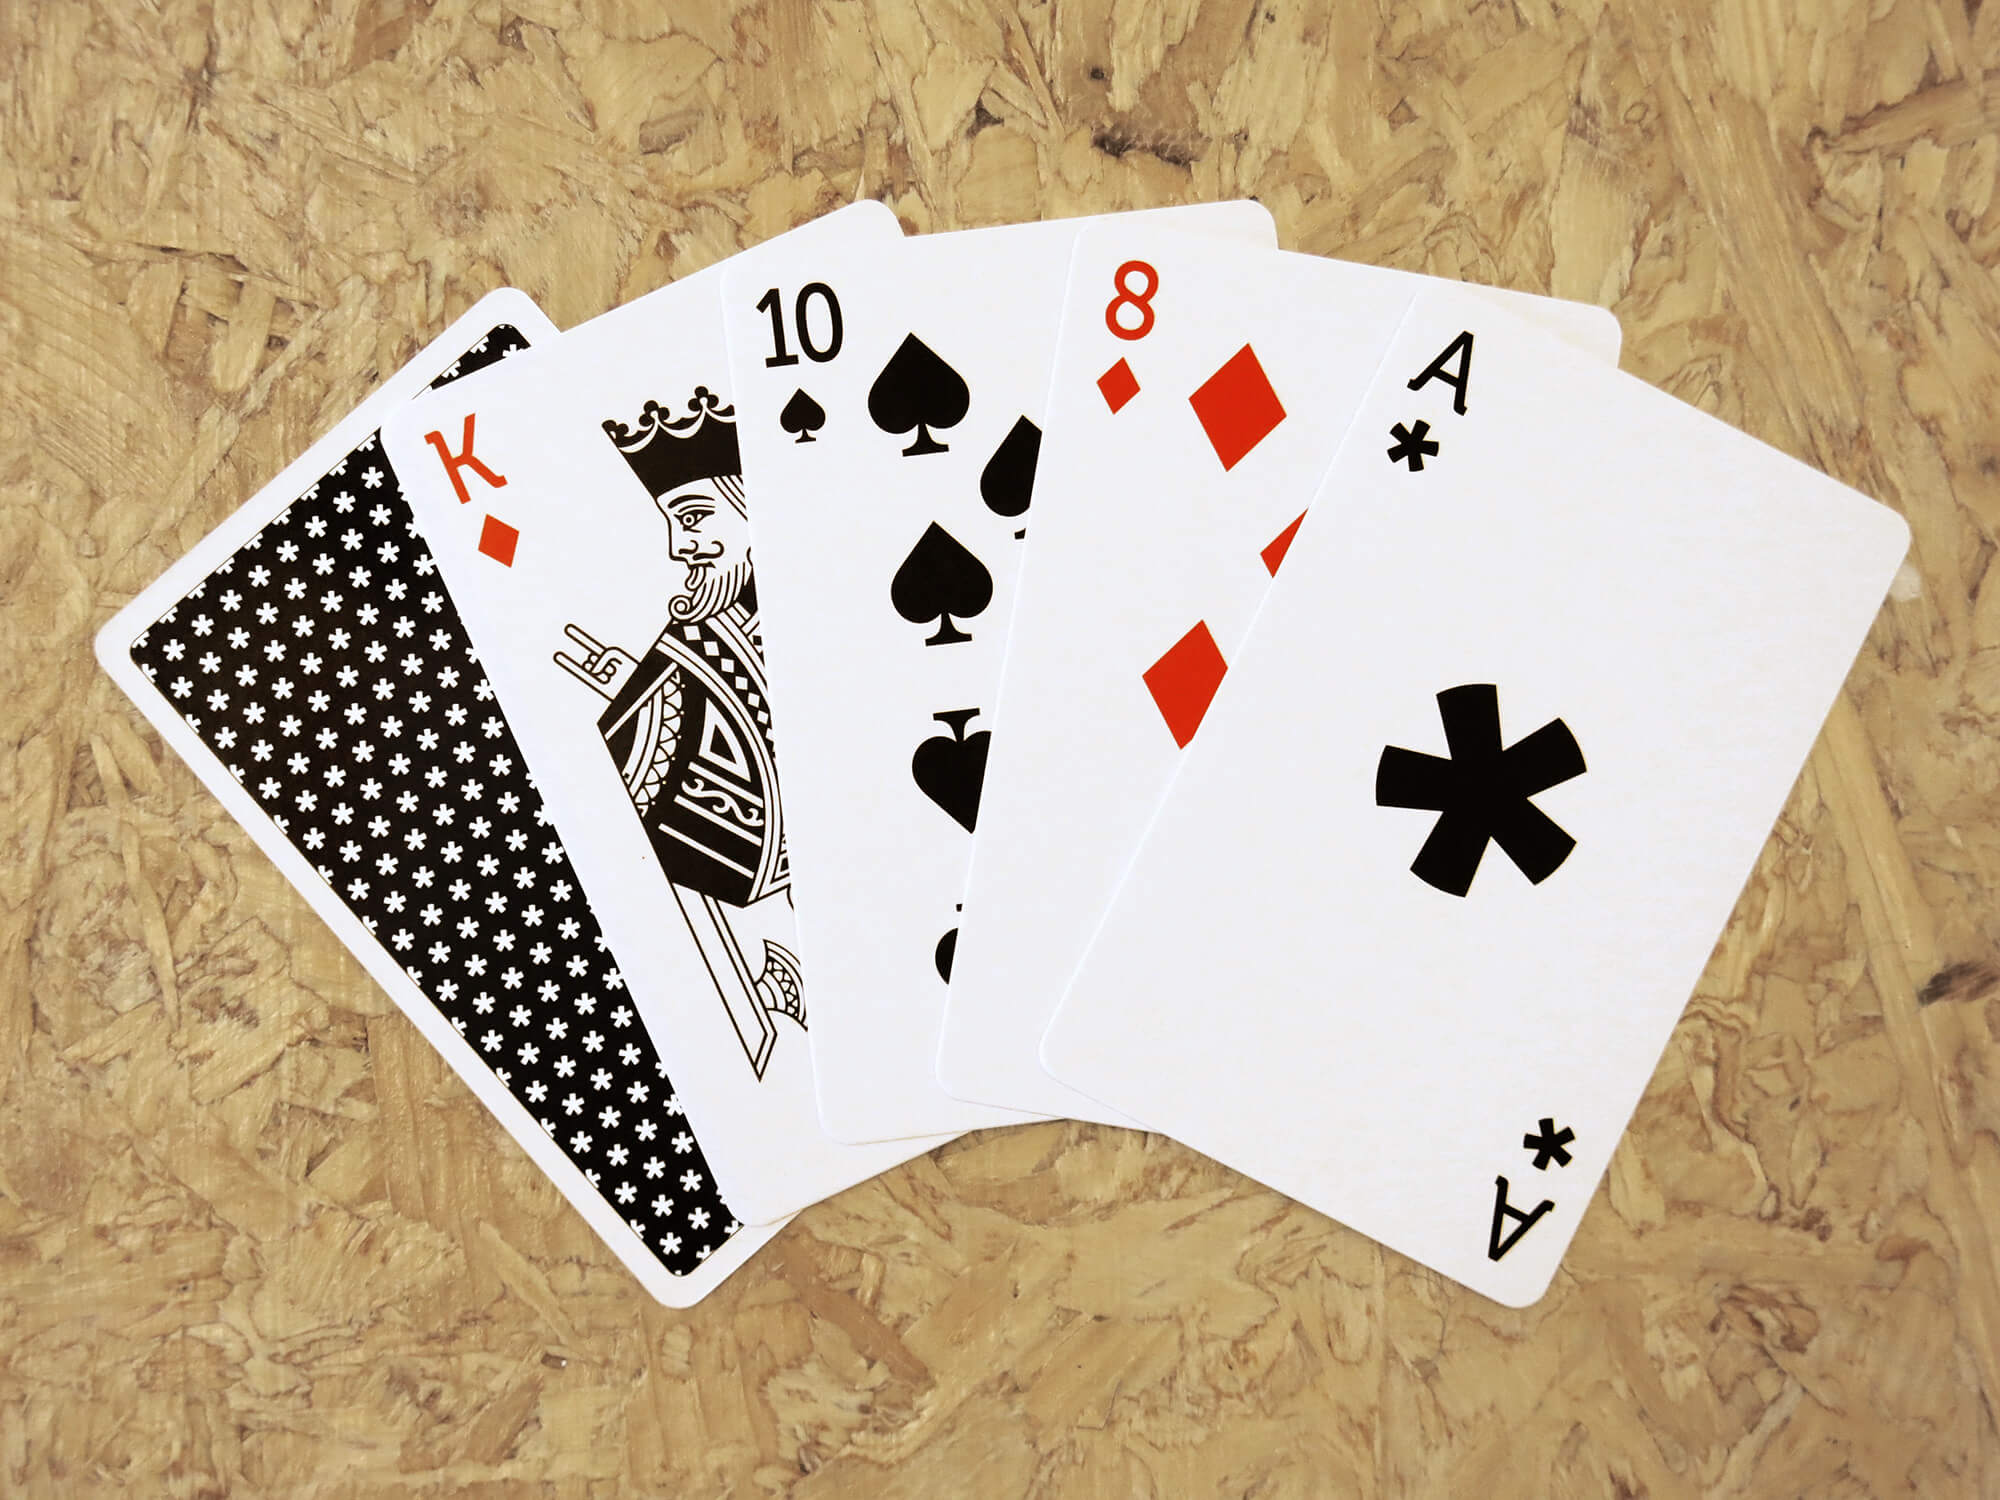 kapowksi_bliep_playingcards_1